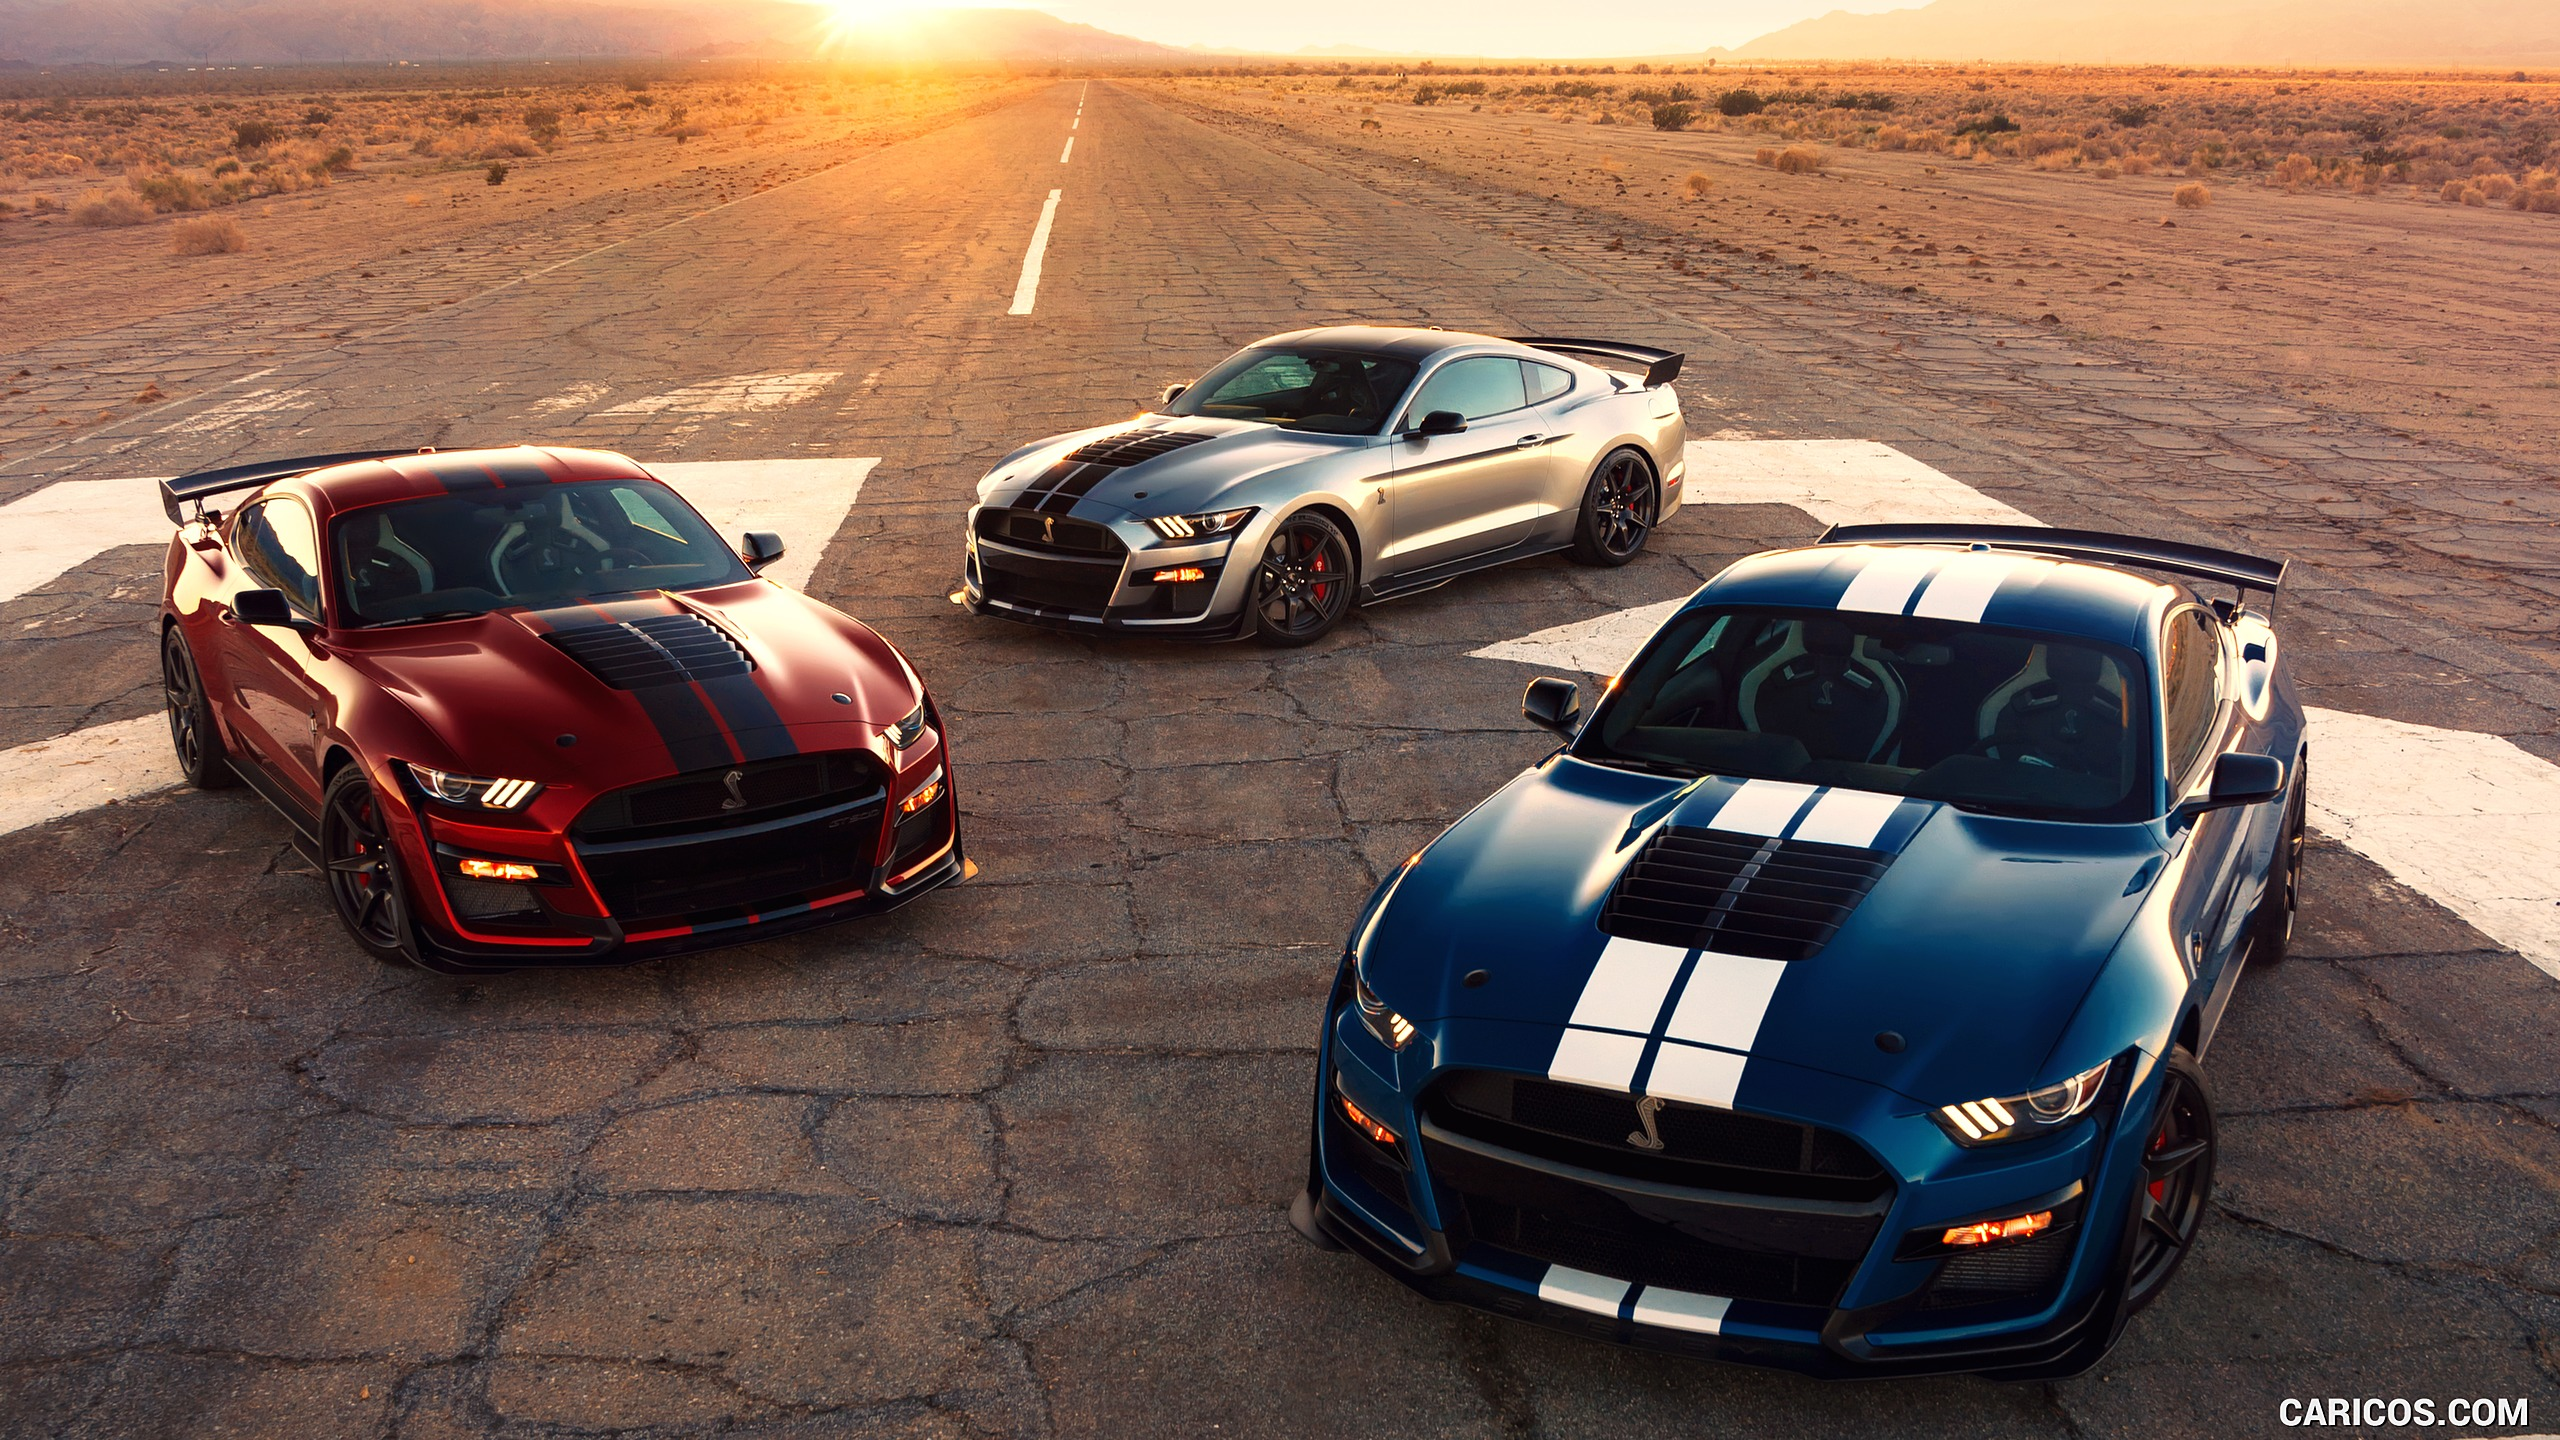 2020 Ford Mustang Shelby GT500 HD Wallpaper 110 2560x1440